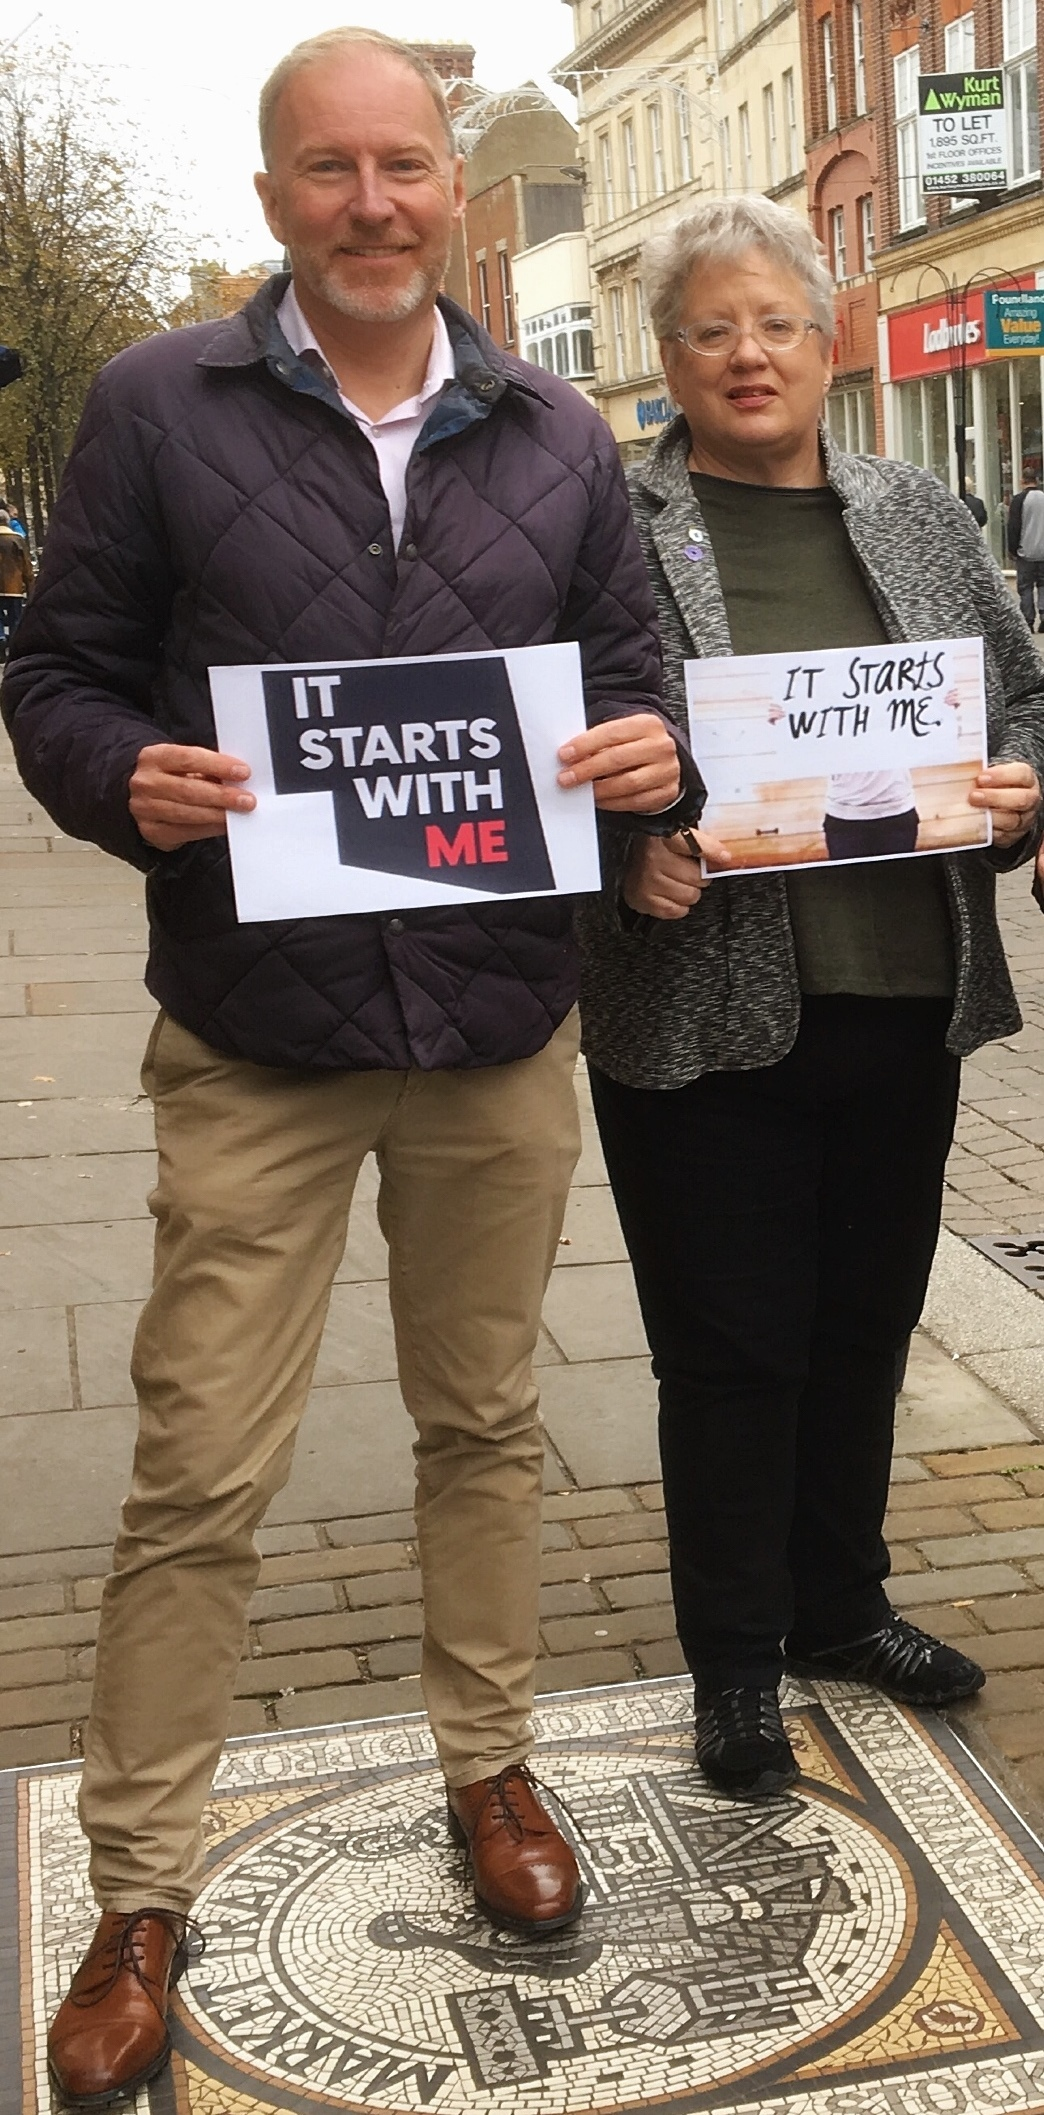 Cllr Paul Hodgkinson (left) spoke on the importance of regular HIV testing as National HIV Testing Week starts on Saturday